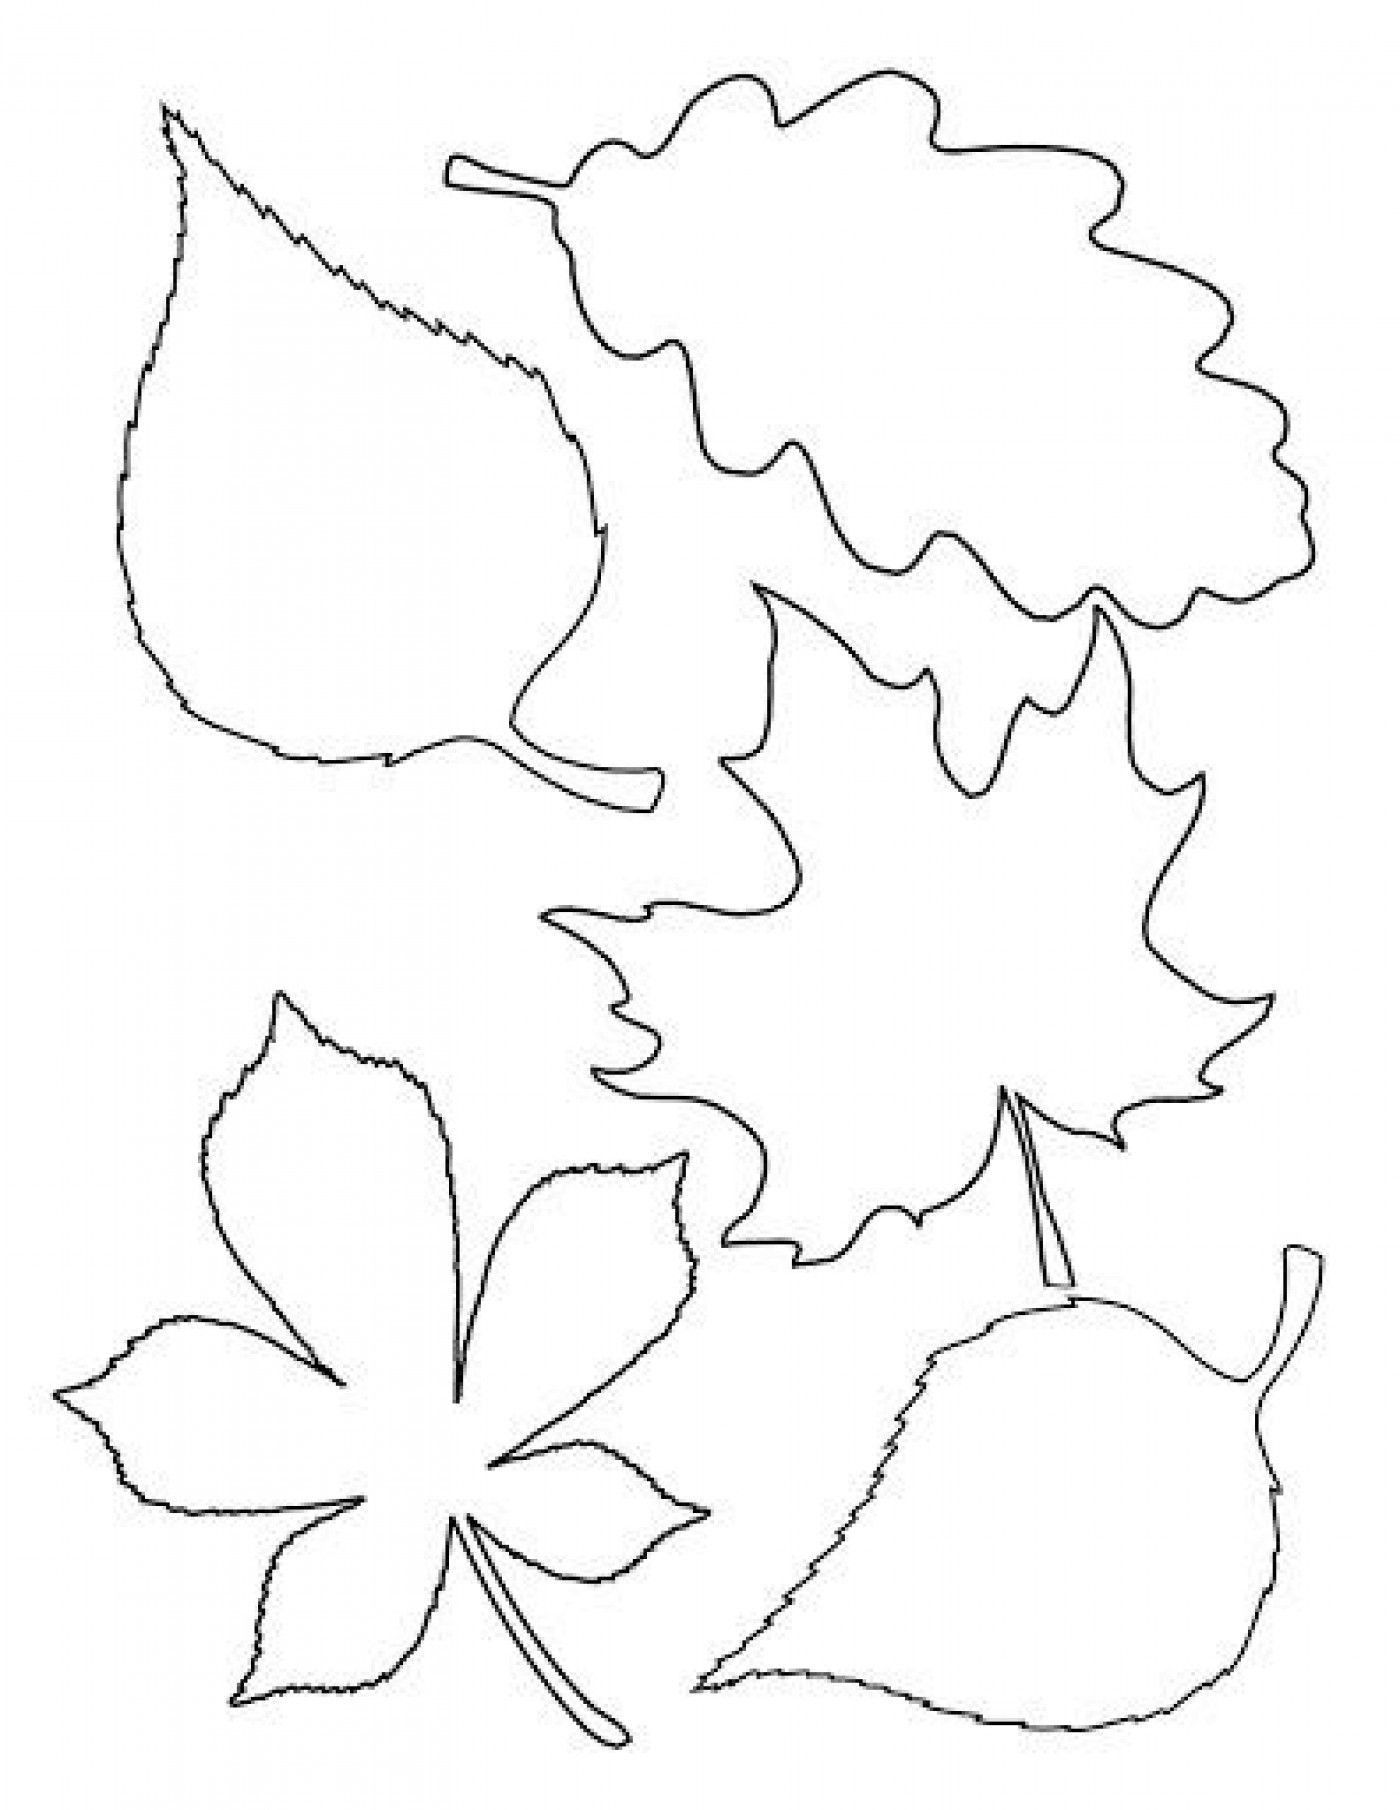 004 Unique Blank Leaf Template With Line Design  Printable1400